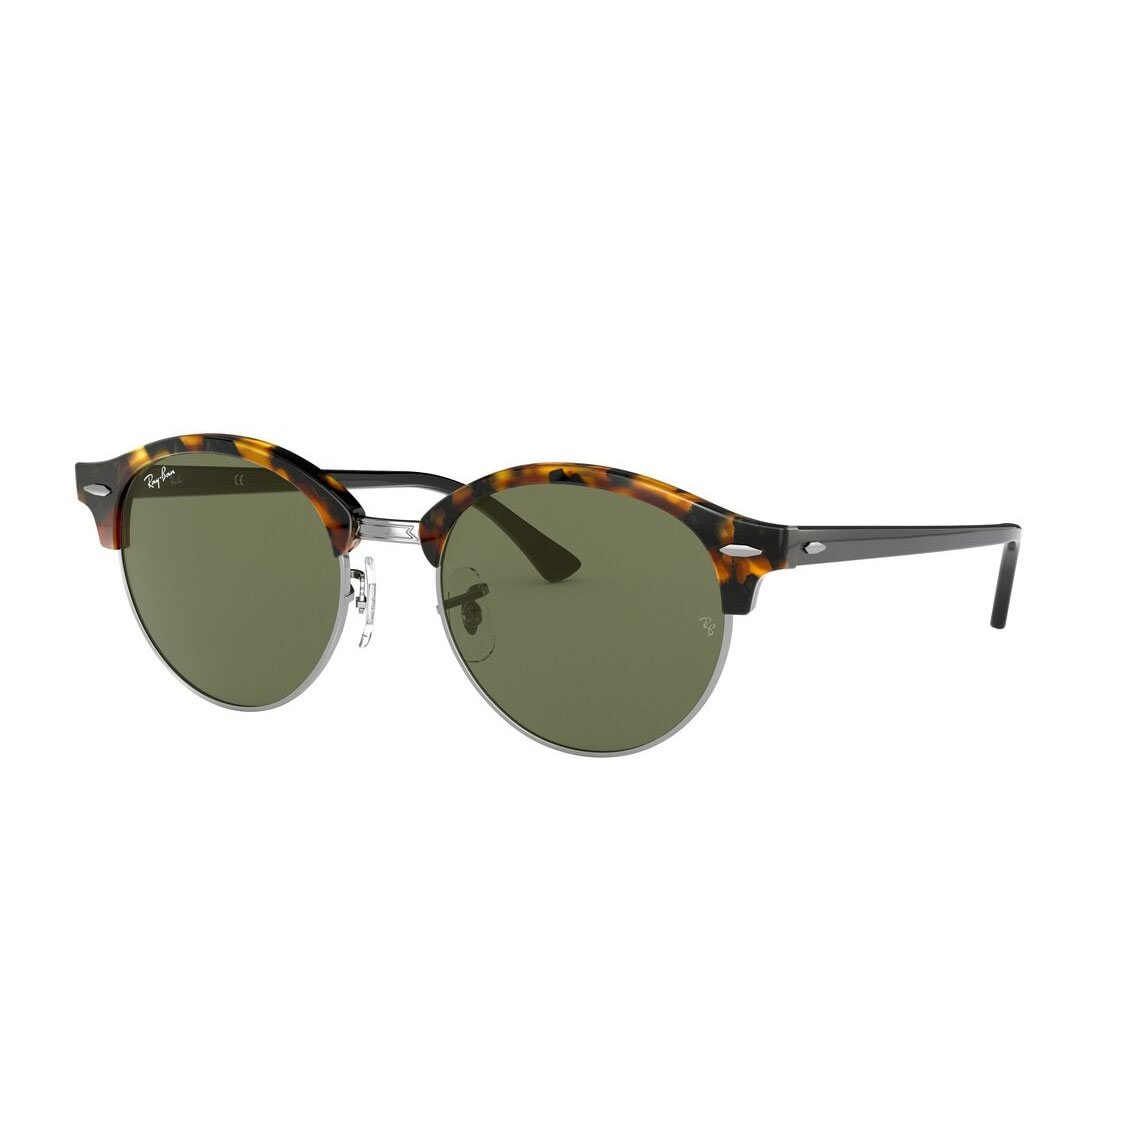 Ray-Ban Clubround RB4246 1157 51